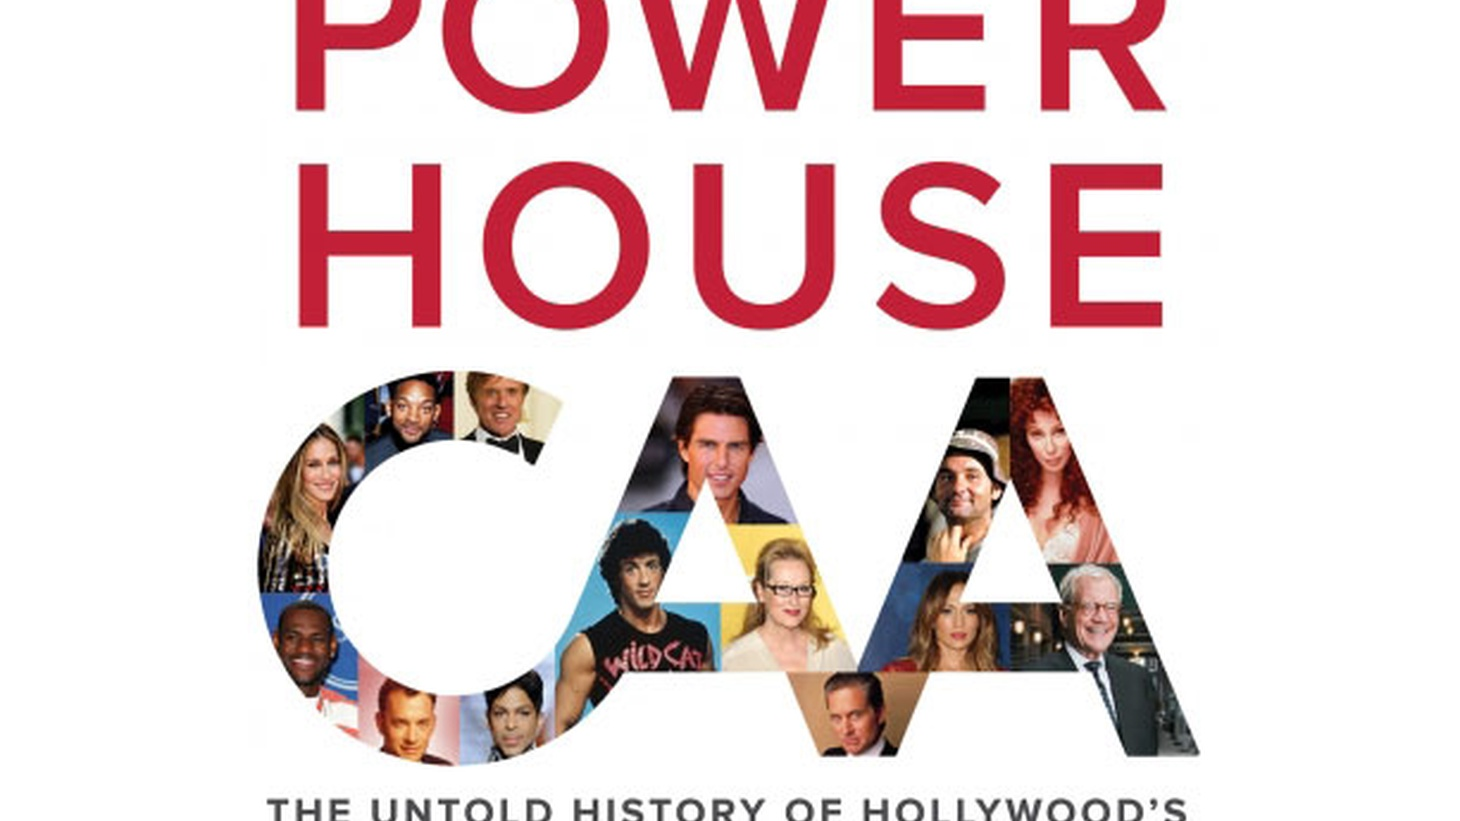 James Andrew Miller has worked on in-depth oral histories of Saturday Night Live and ESPN. His newest book Powerhouse, traces the history of CAA, the dominant, but secretive Hollywood talent agency. He tells us how he got notoriously press-shy agents, including Michael Ovitz, to go on the record.